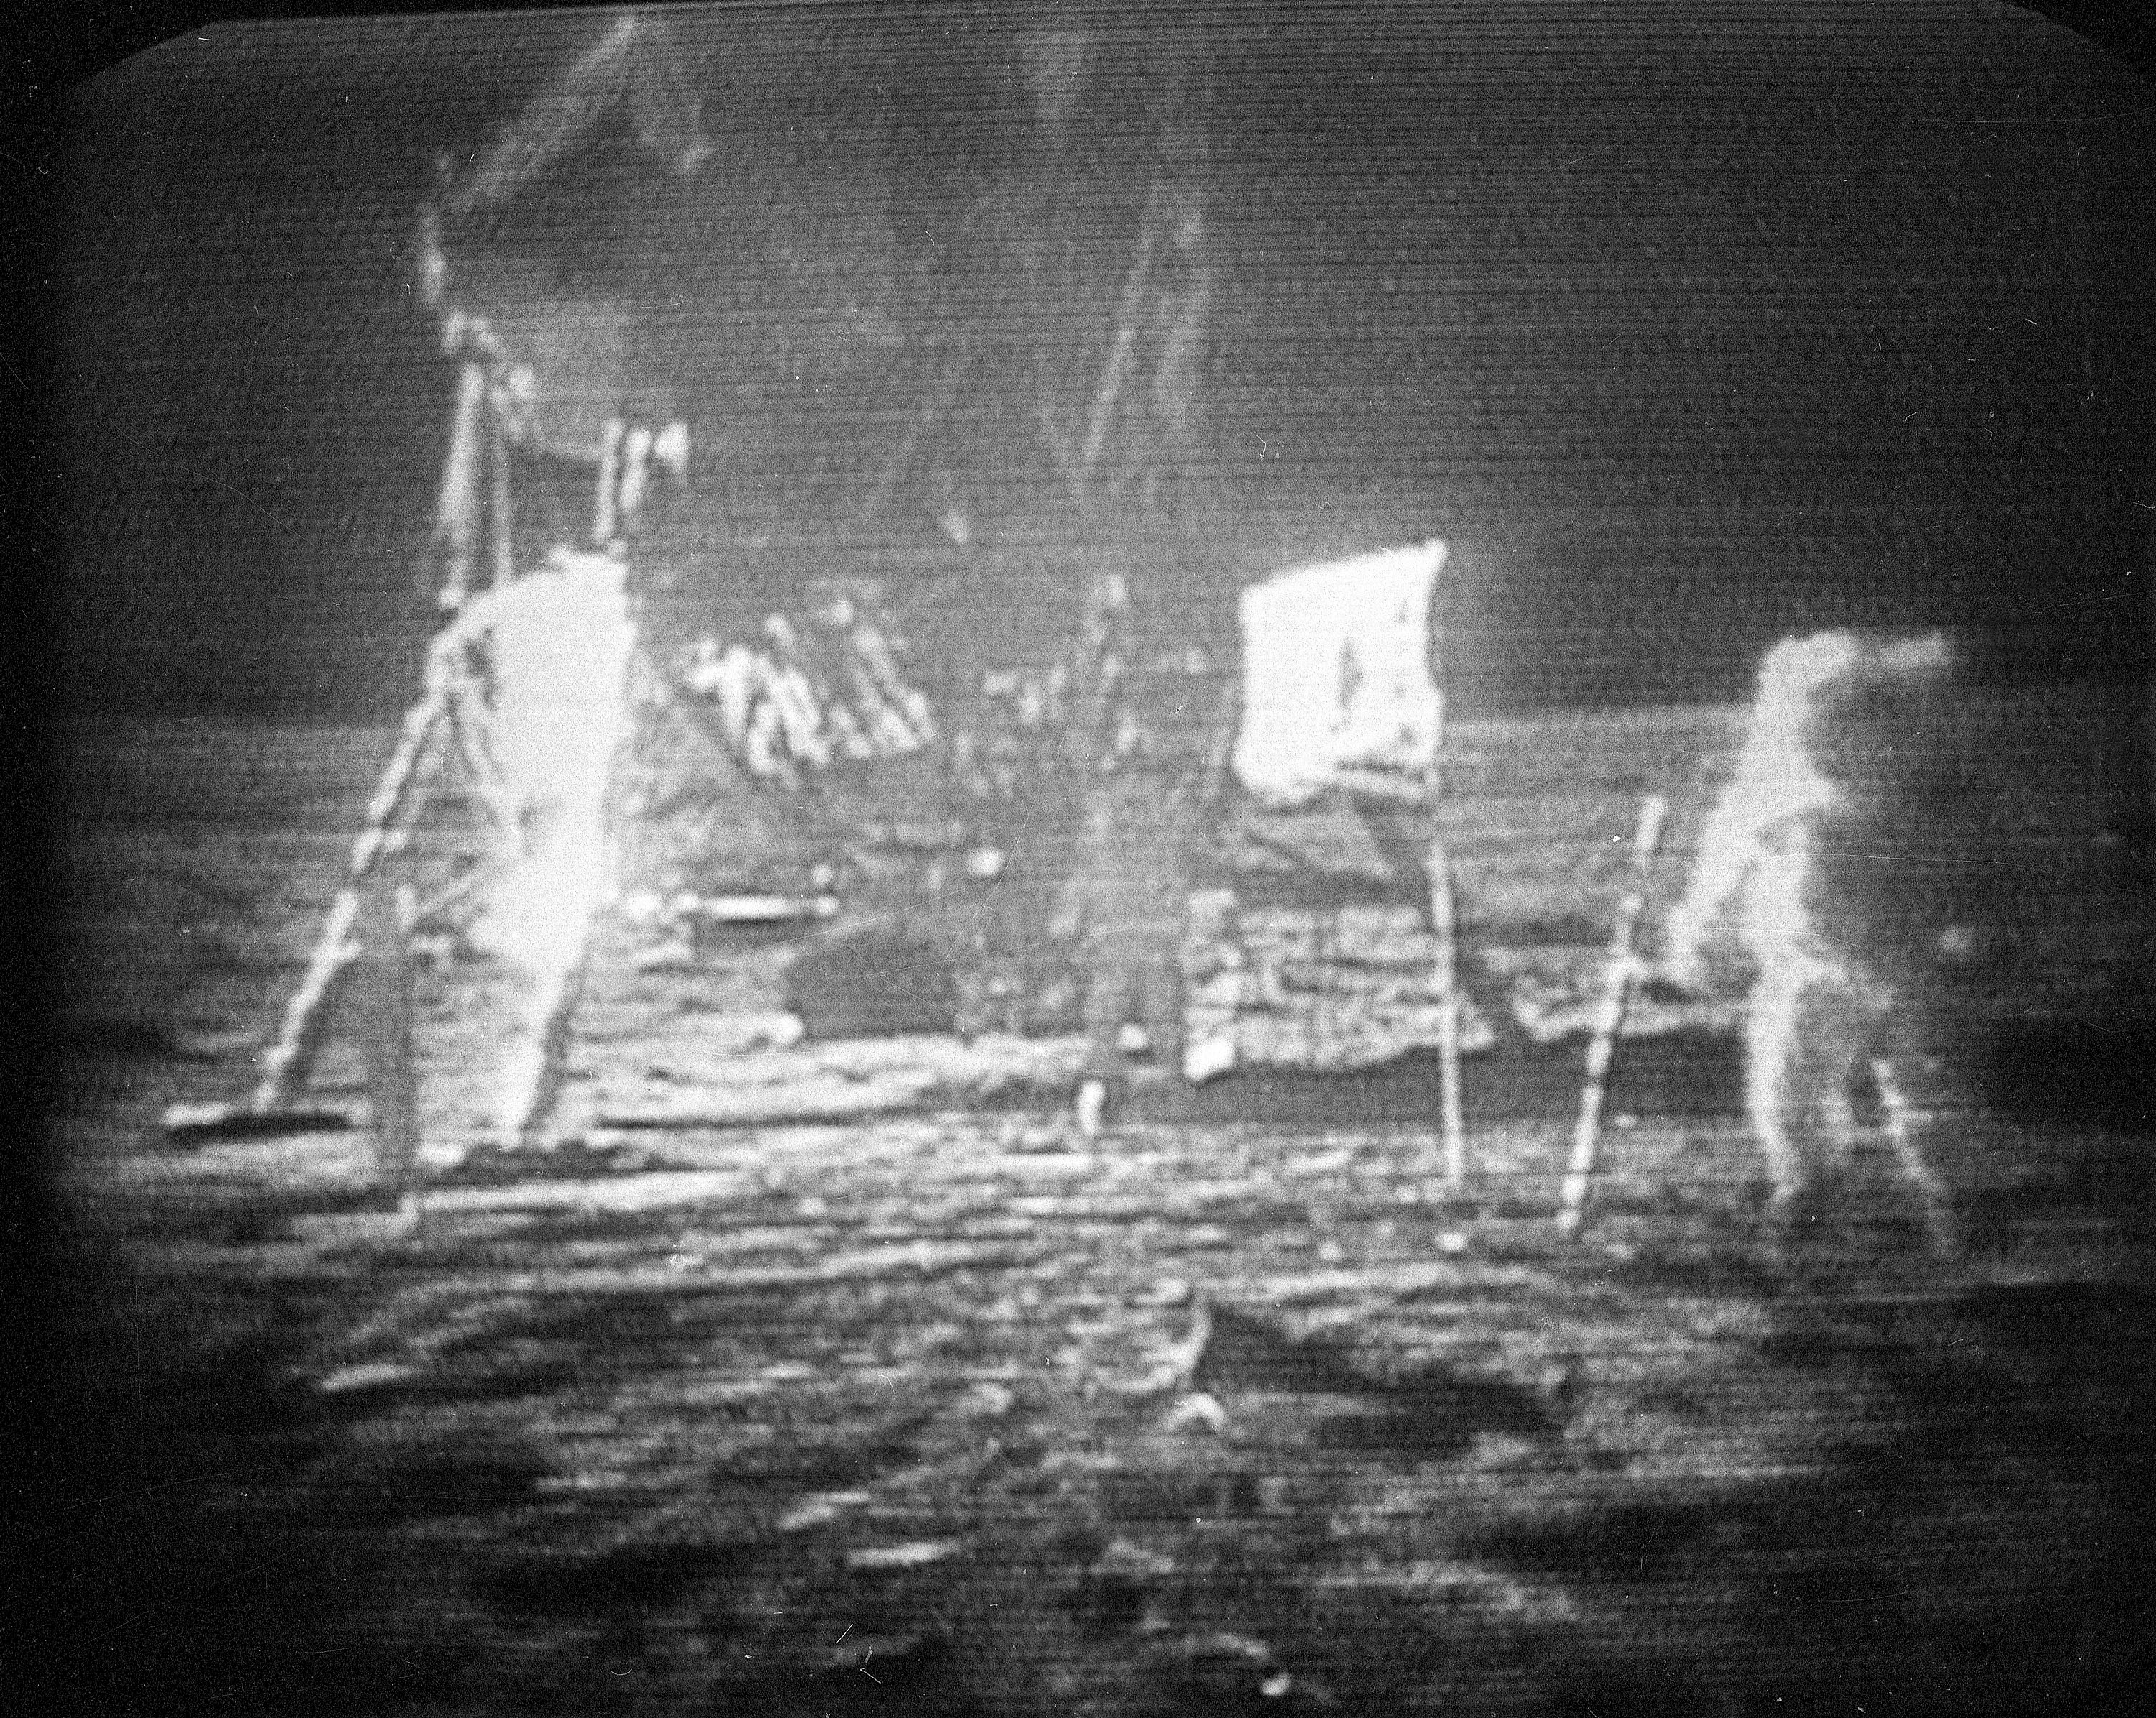 armstrong one wire jobs parts of a volcano diagram worksheets neil s sons u flag is in ryan gosling film file this july 20 1969 black and white photo taken from television monitor apollo 11 astronaut right trudging across the